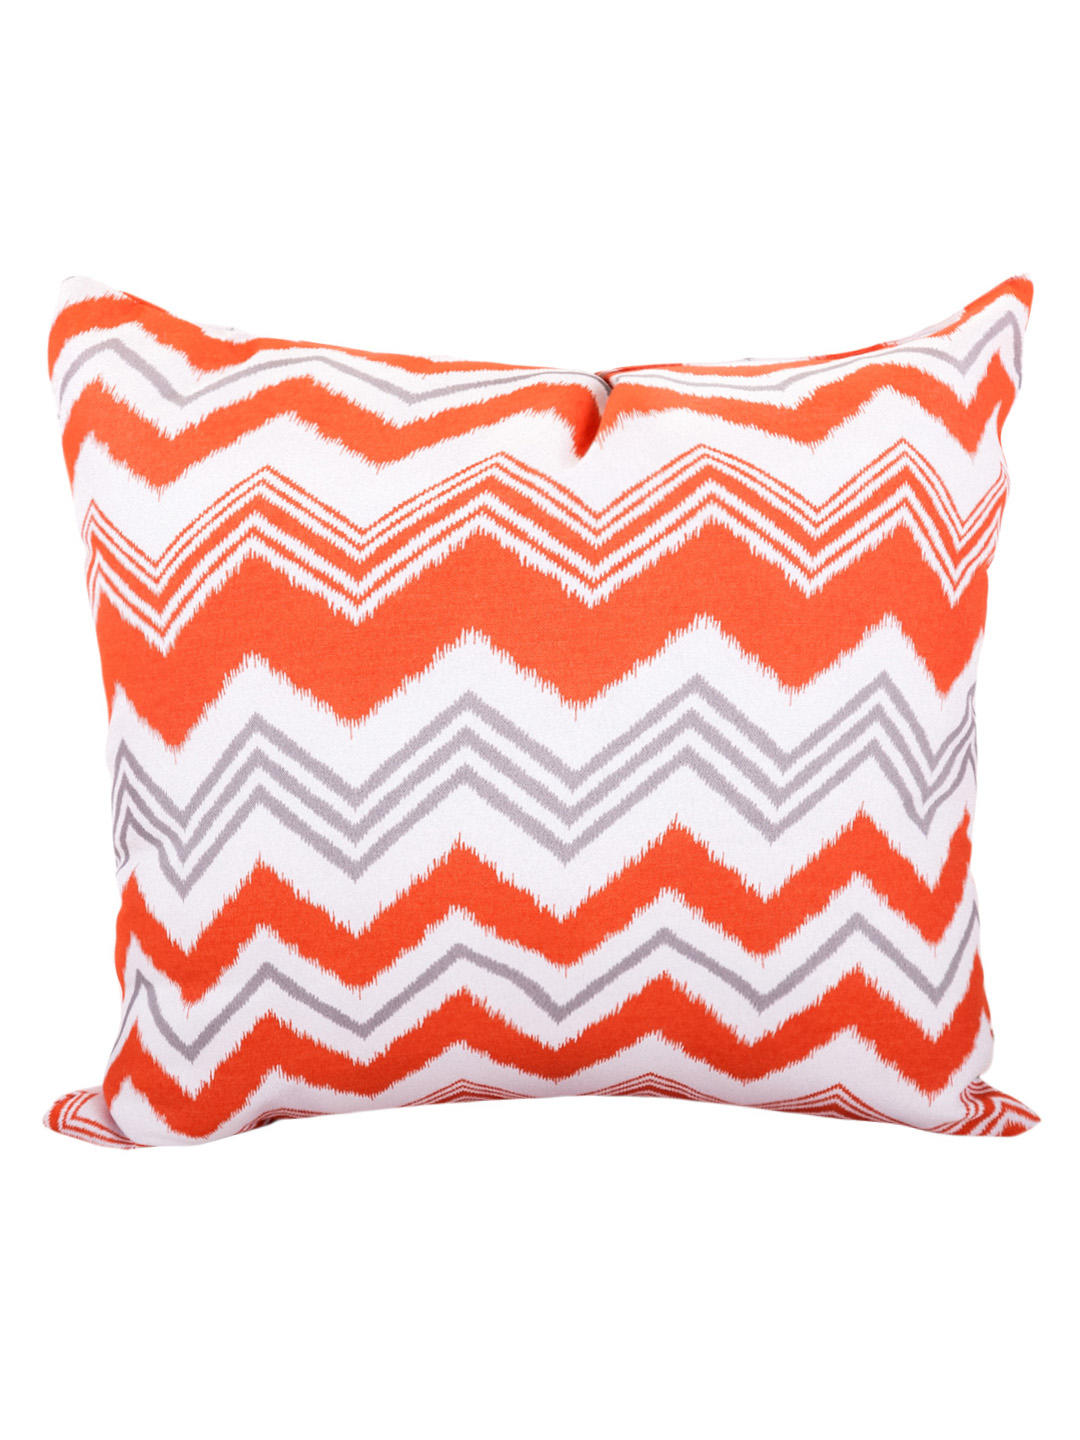 Xl Decorative Pillows : Zazzle Extra Large Throw Pillow from Gilt